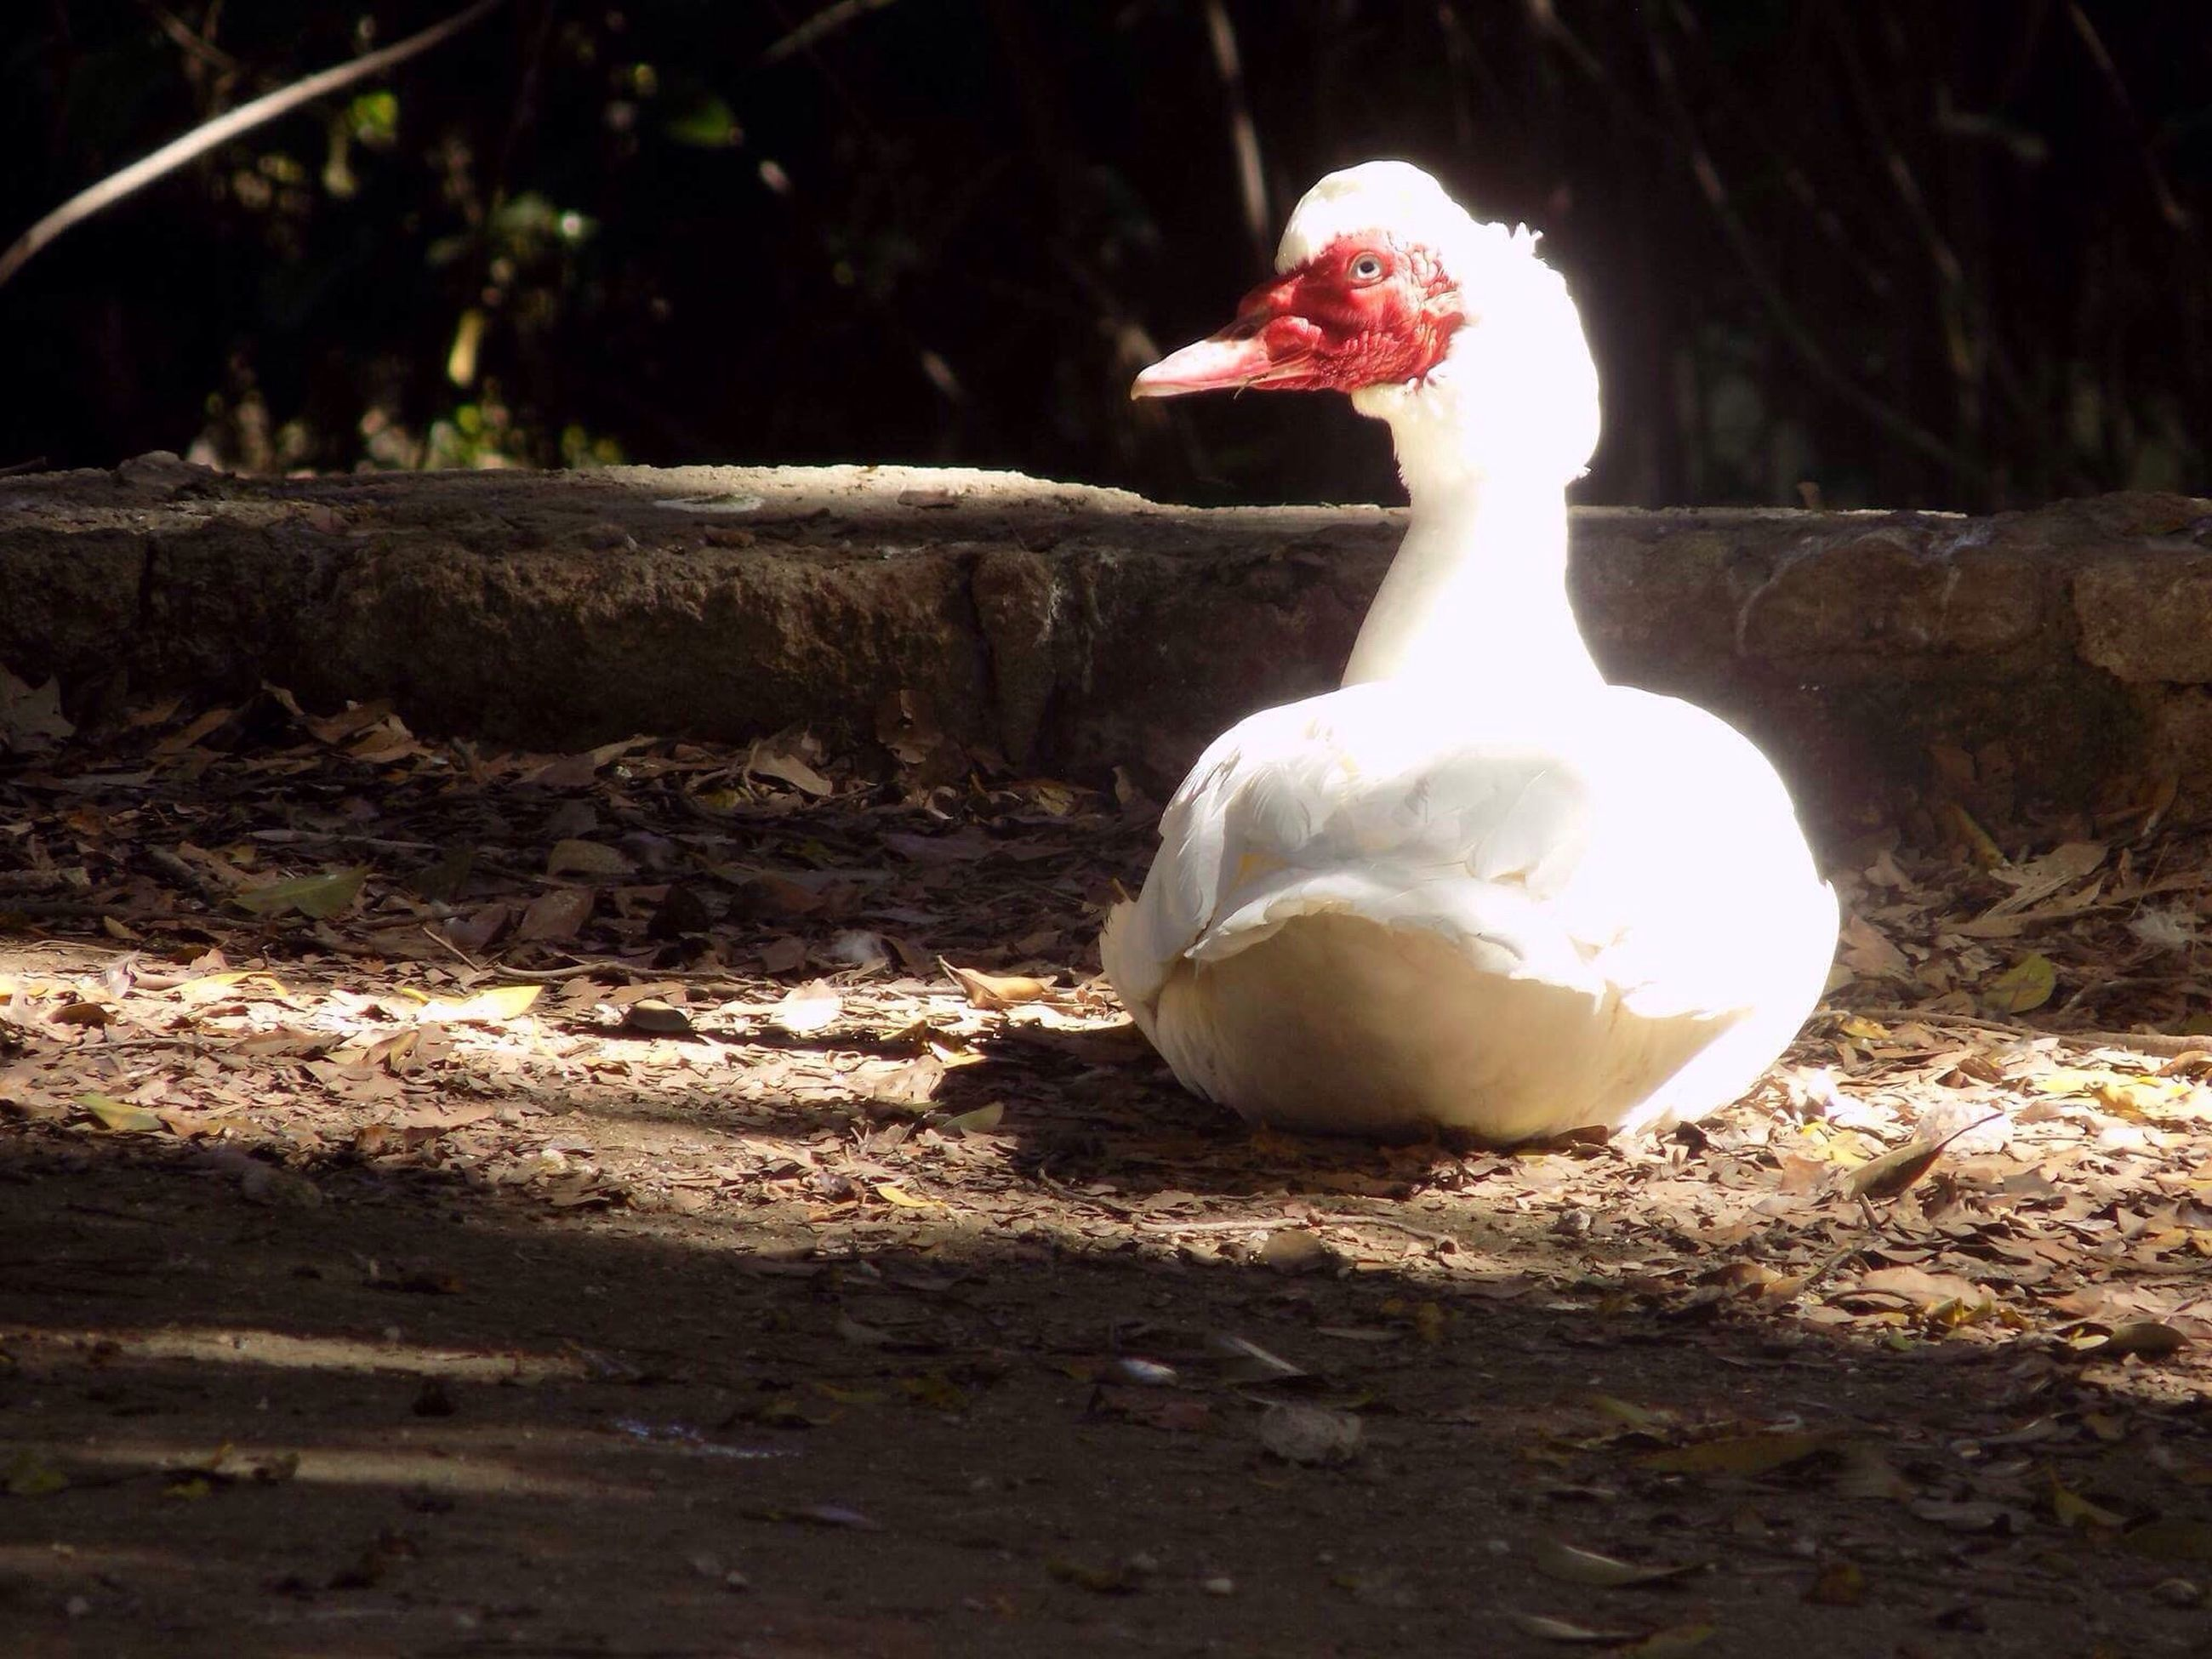 bird, animal themes, no people, muscovy duck, outdoors, one animal, animals in the wild, day, domestic animals, close-up, nature, swan